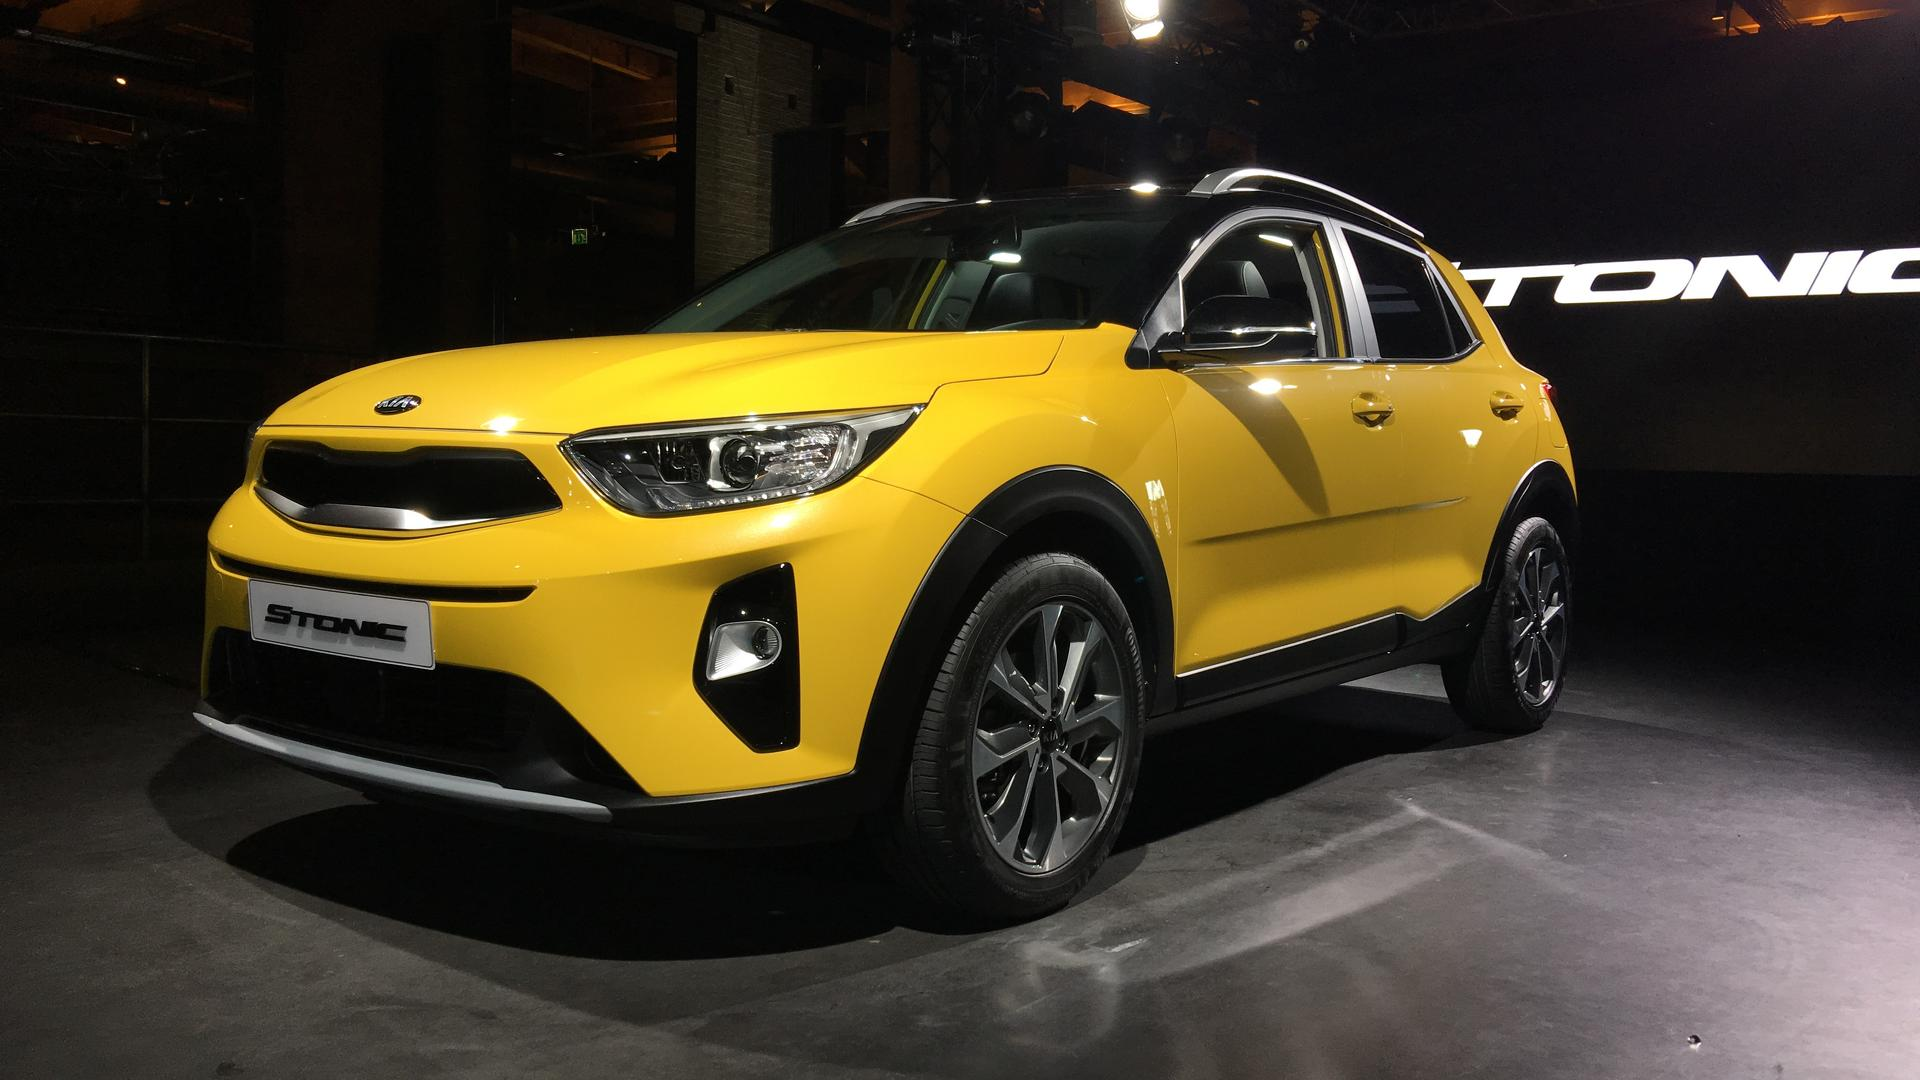 2018 Kia Stonic Subcompact Crossover Debuts In The Metal